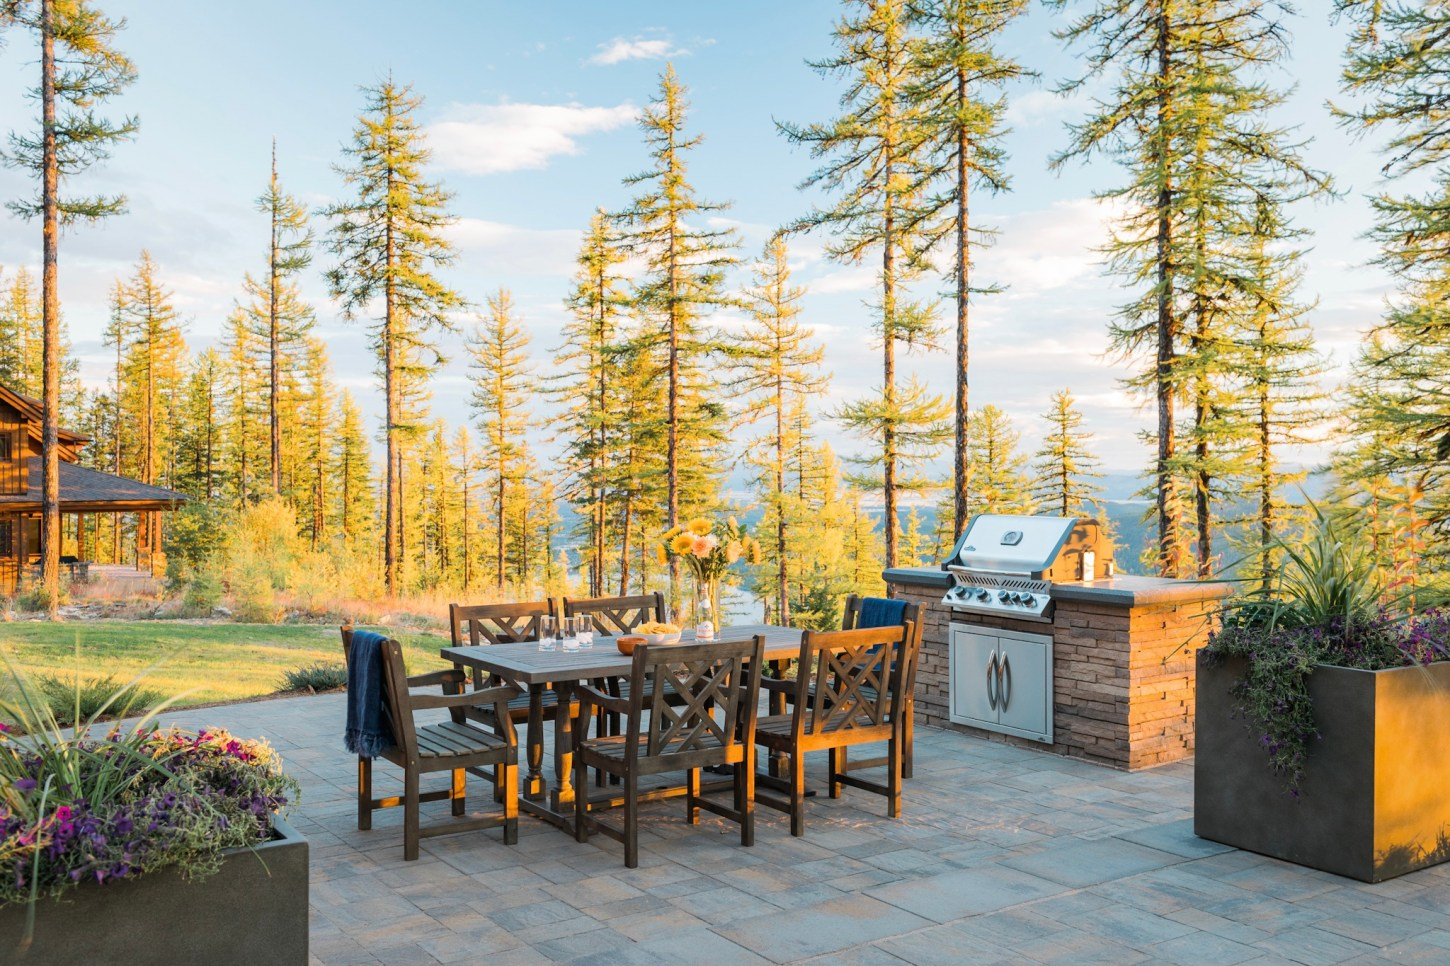 HGTV Dream Home 2019 in Whitefish, Montana